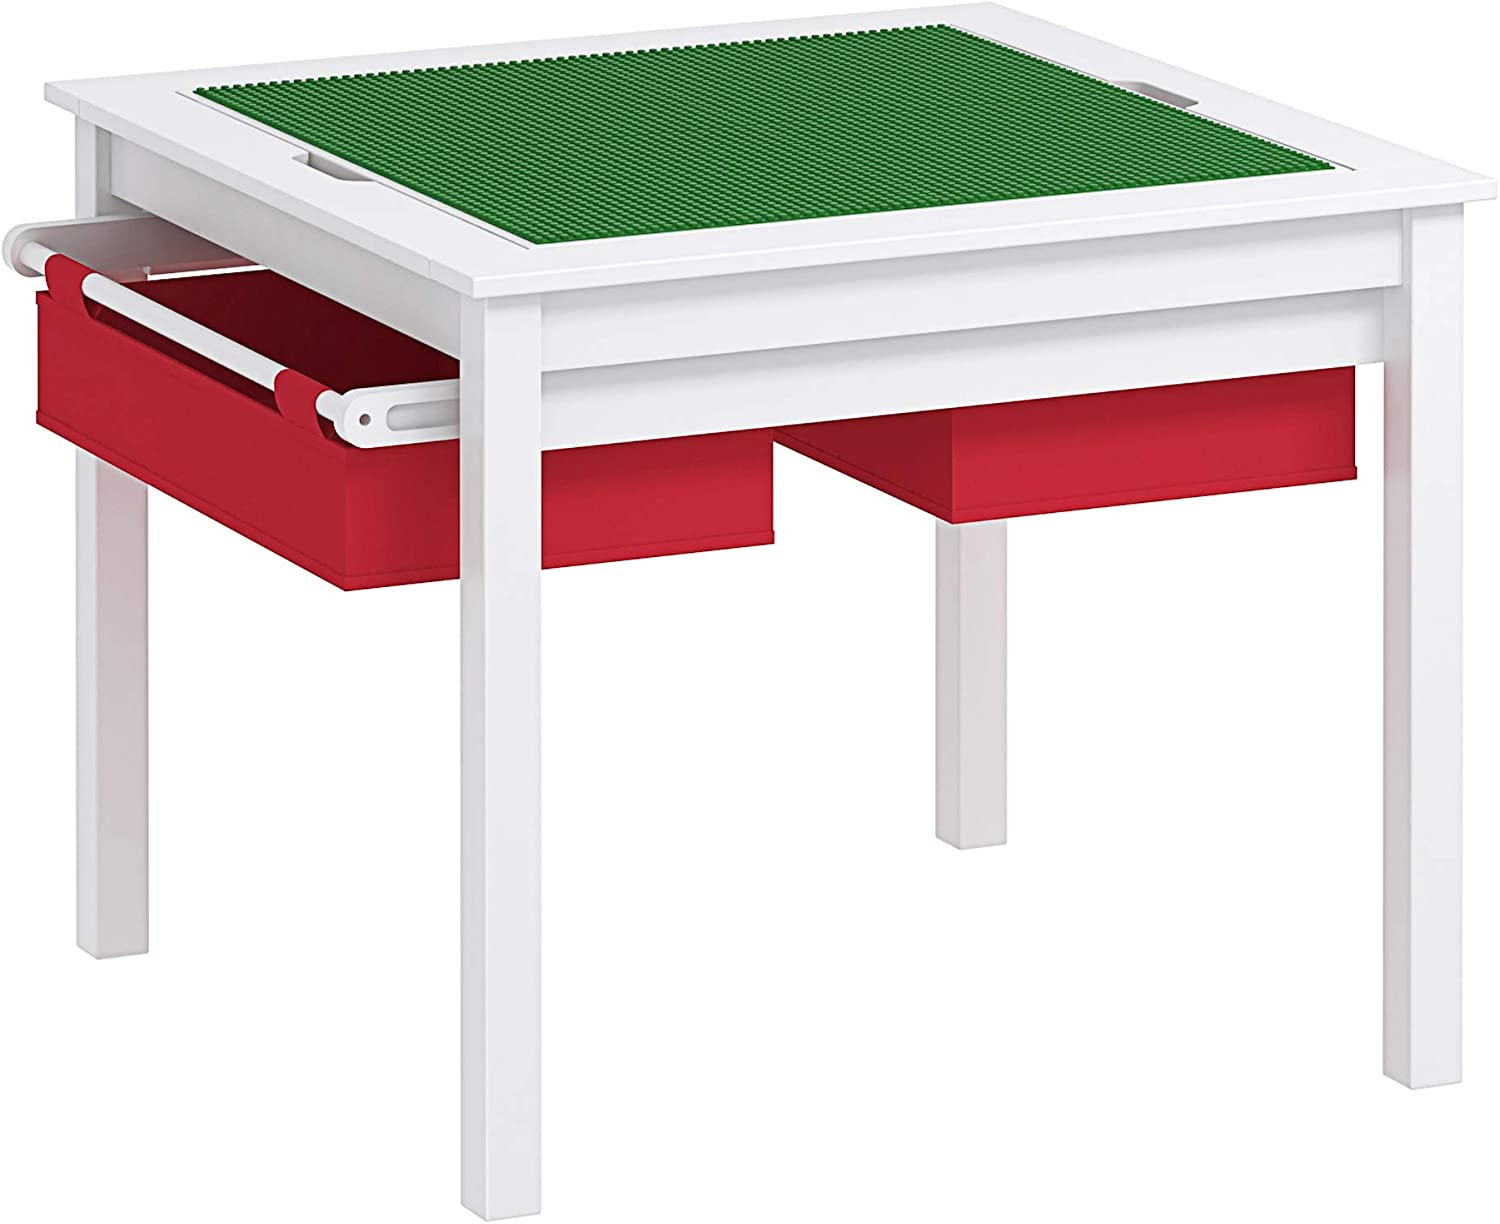 UTEX 2 in 1 Kids Construction Play Table with Storage Drawers and Built in Plate (White with Red Drwaer)